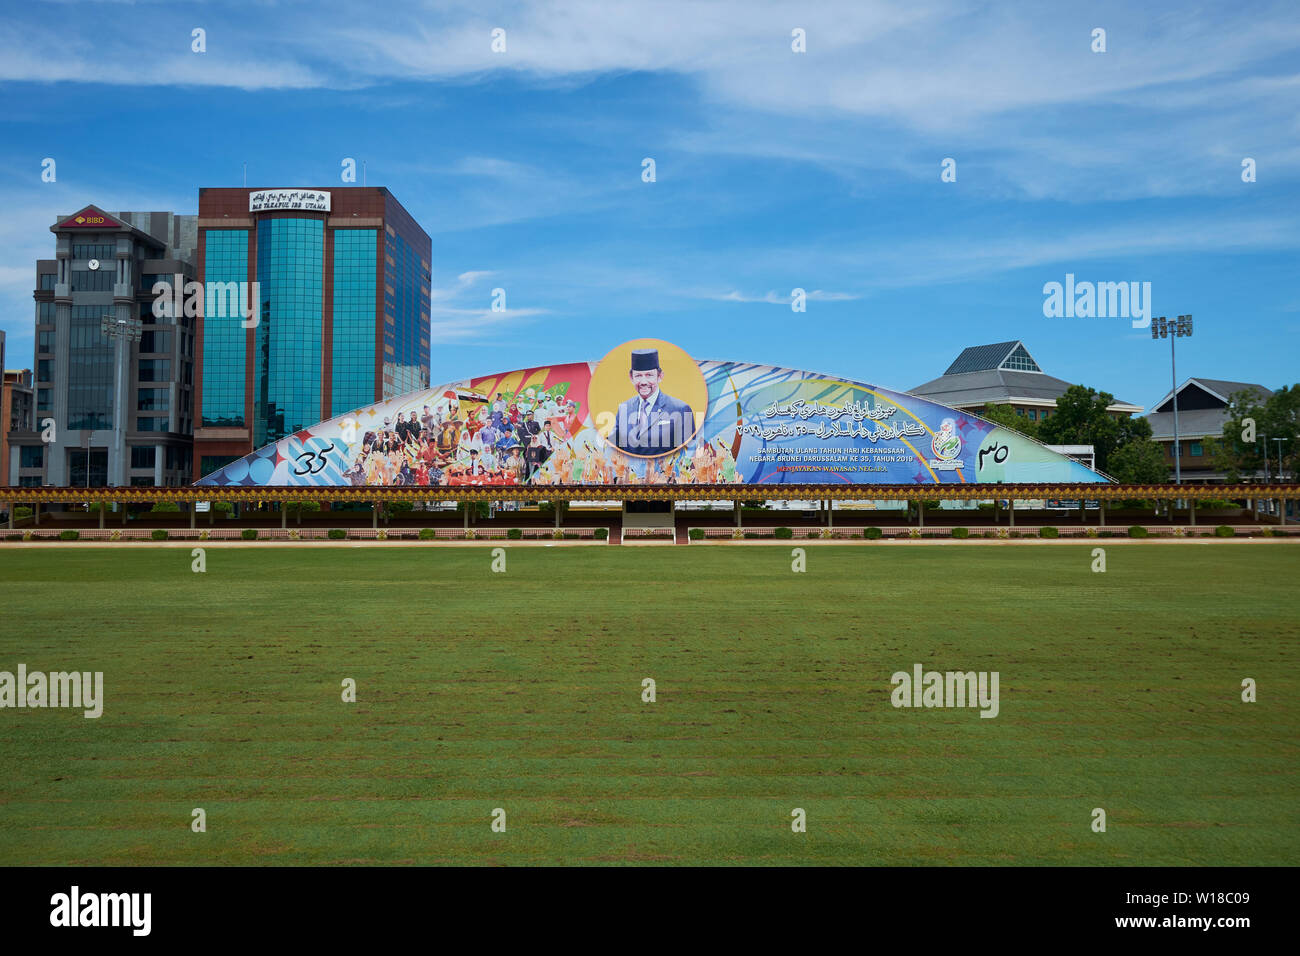 The Taman Haji Sir Muda Omar Ali Saifuddien field in Bandar Seri Begawan, Brunei - Stock Image